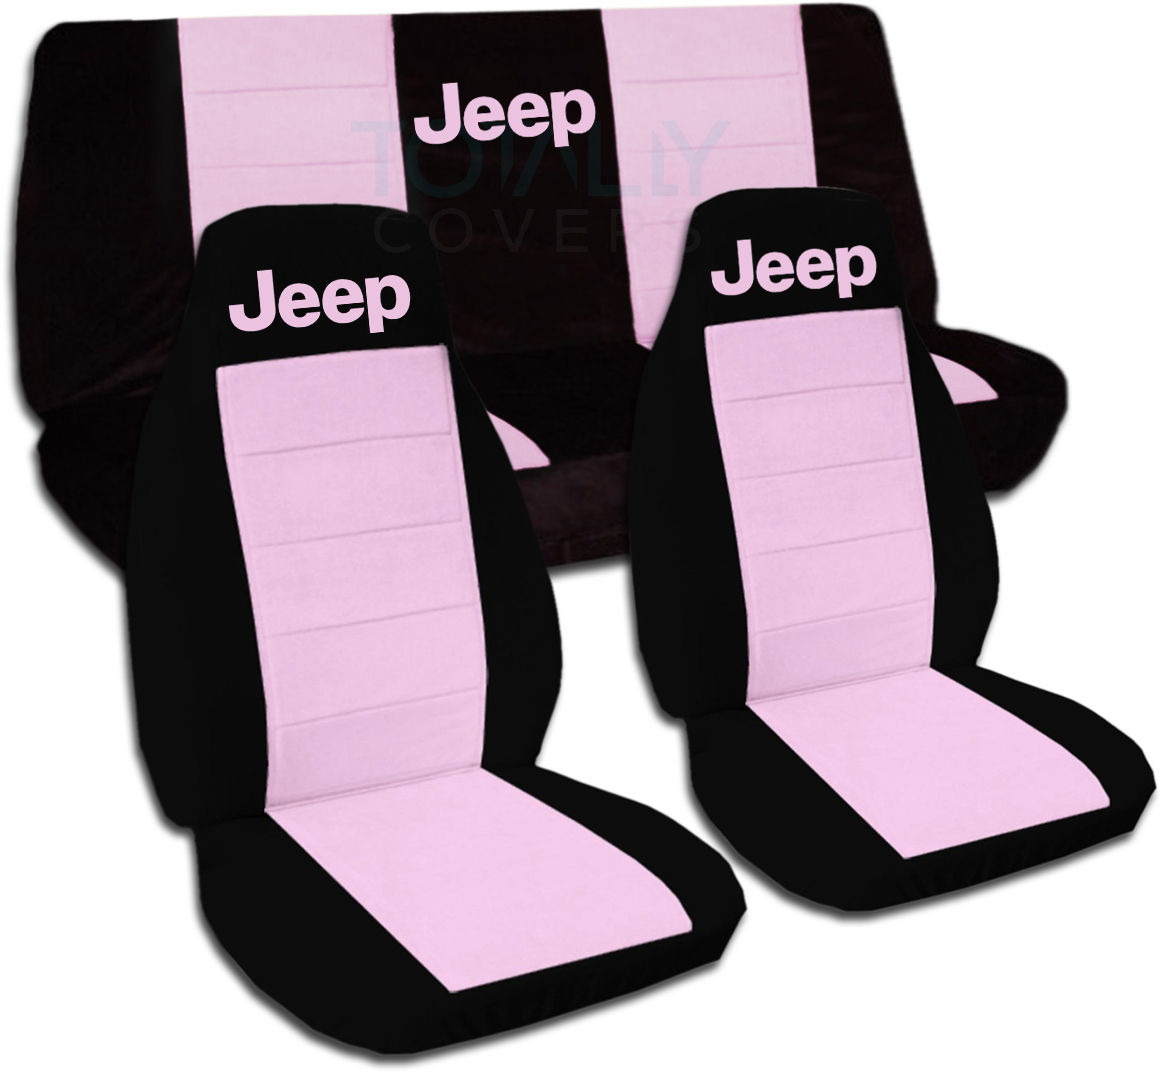 Jeep Wrangler Yj Tj Jk Jl 1987 2019 Two Tone Seat Covers W